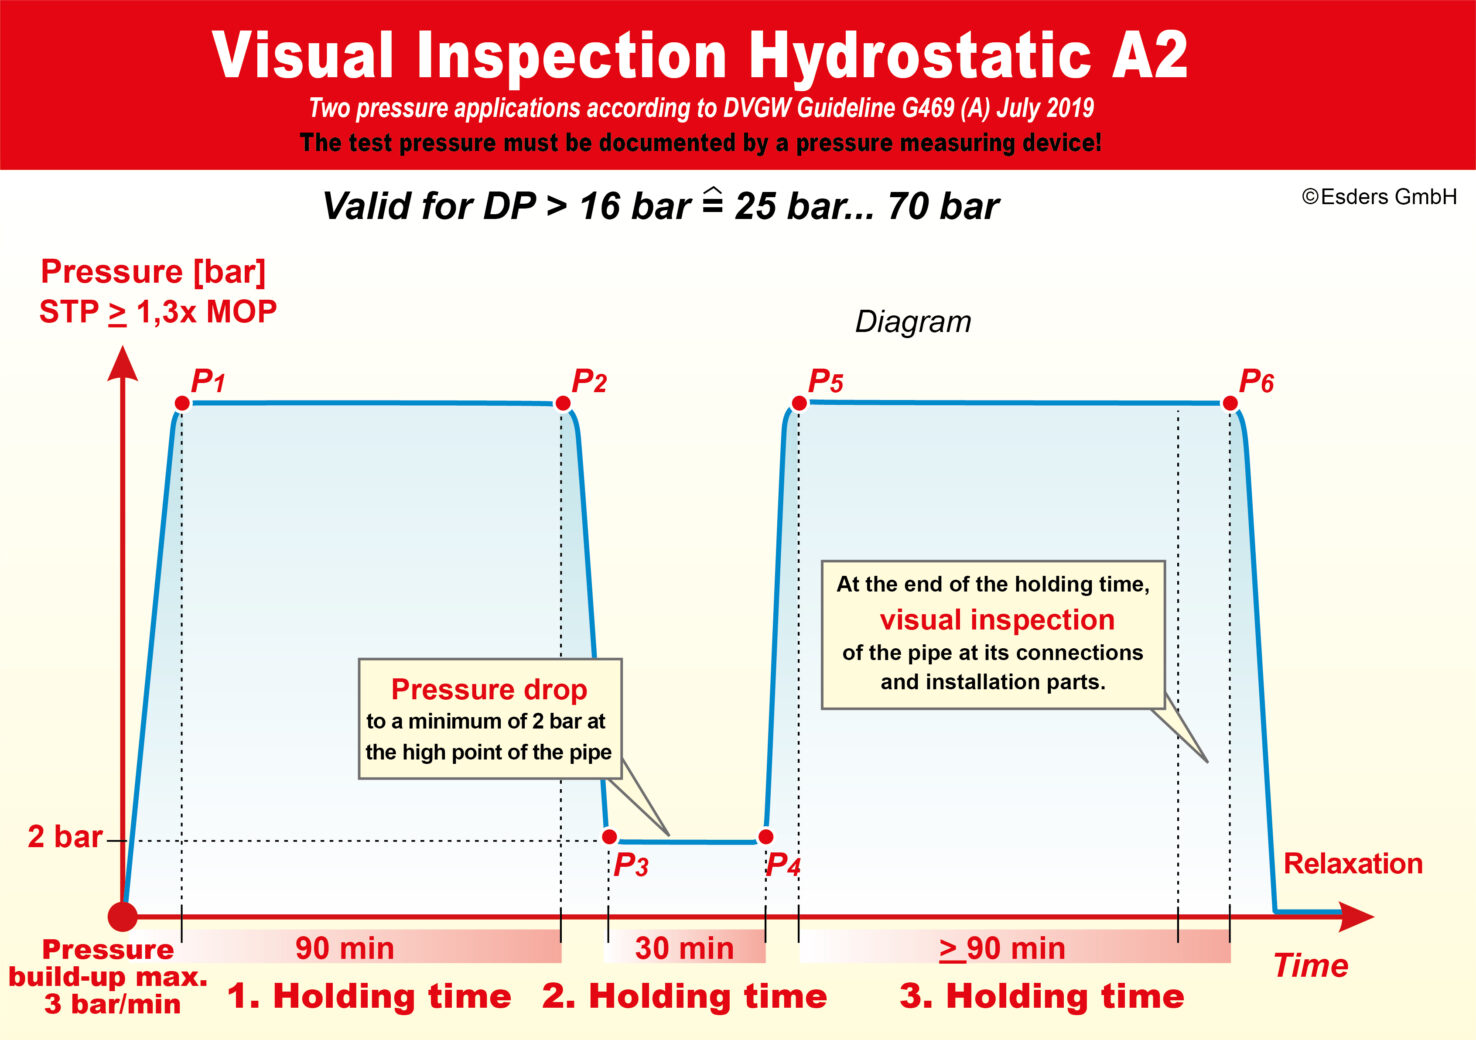 Visual-Inspection-Hydrostatic-A2